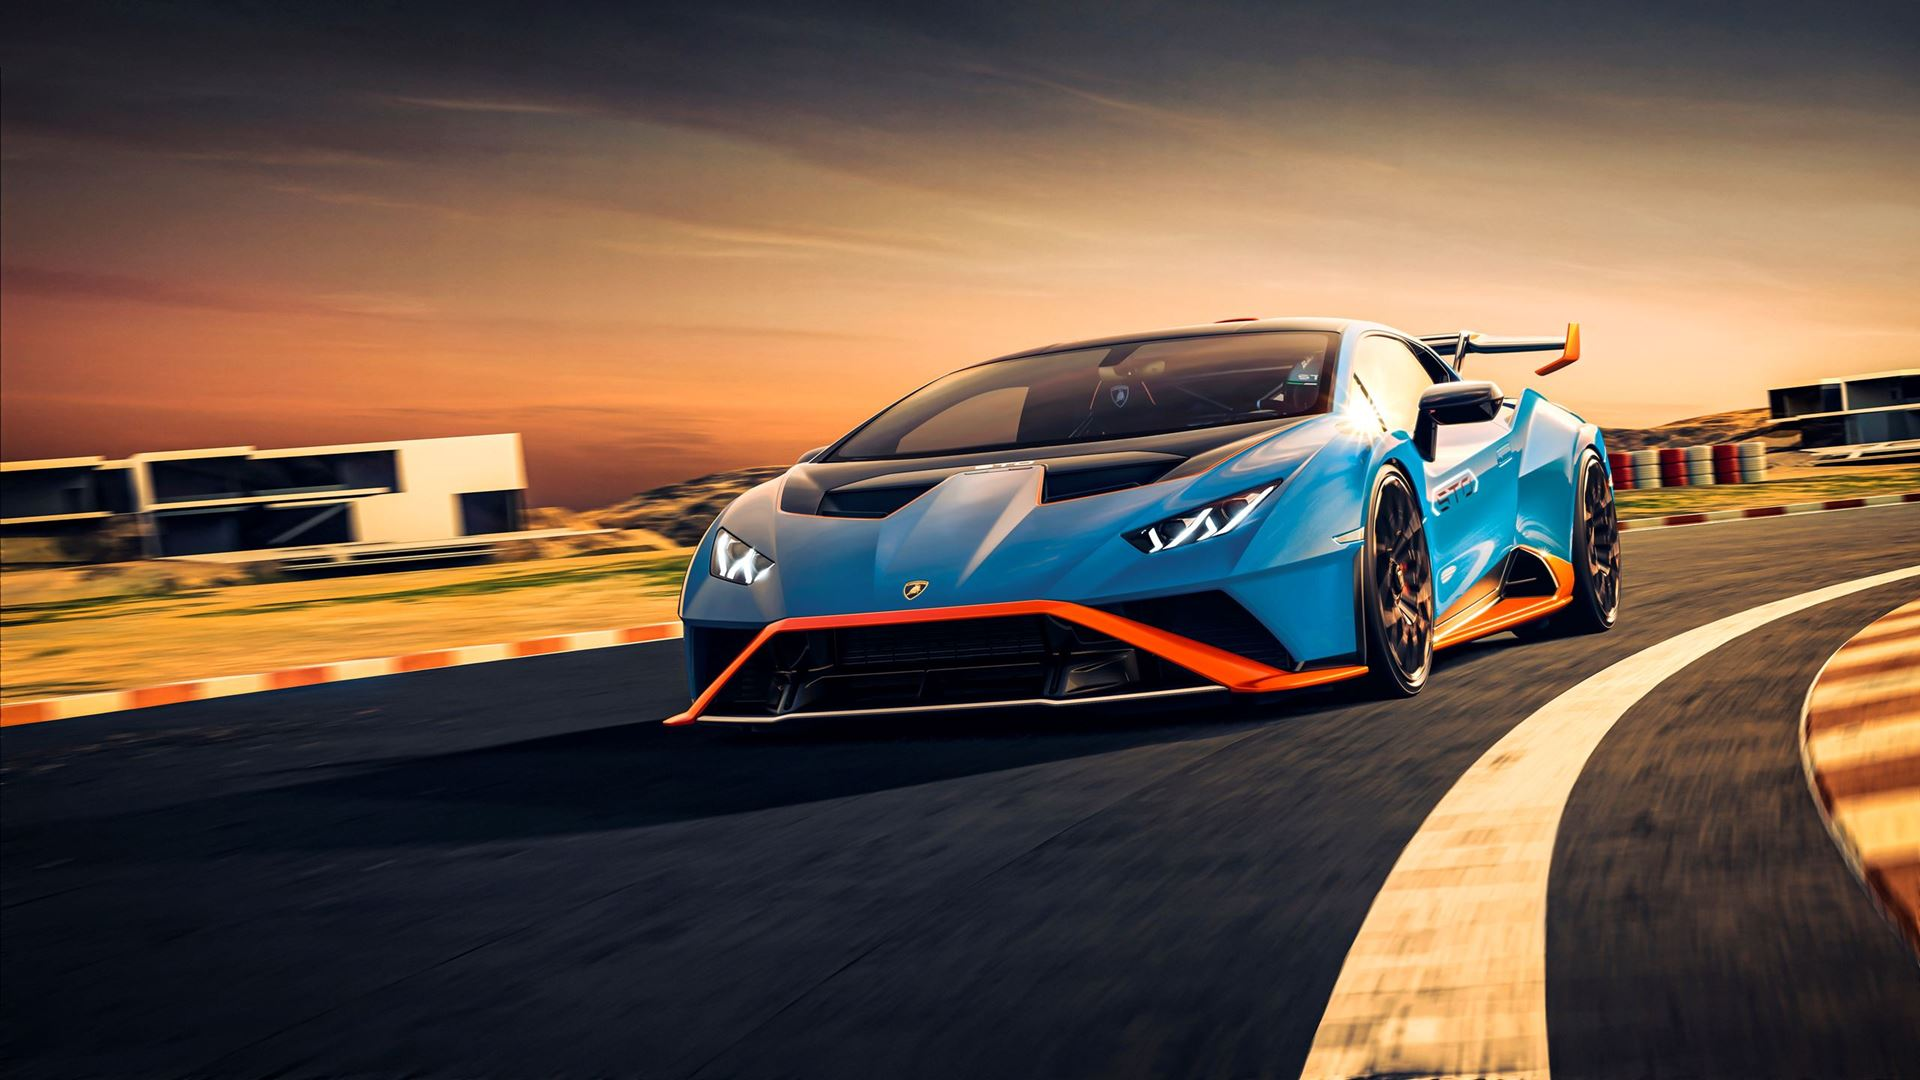 Automobili Lamborghini closes 2020 with 7,430 cars delivered and six new product launches - Image 5